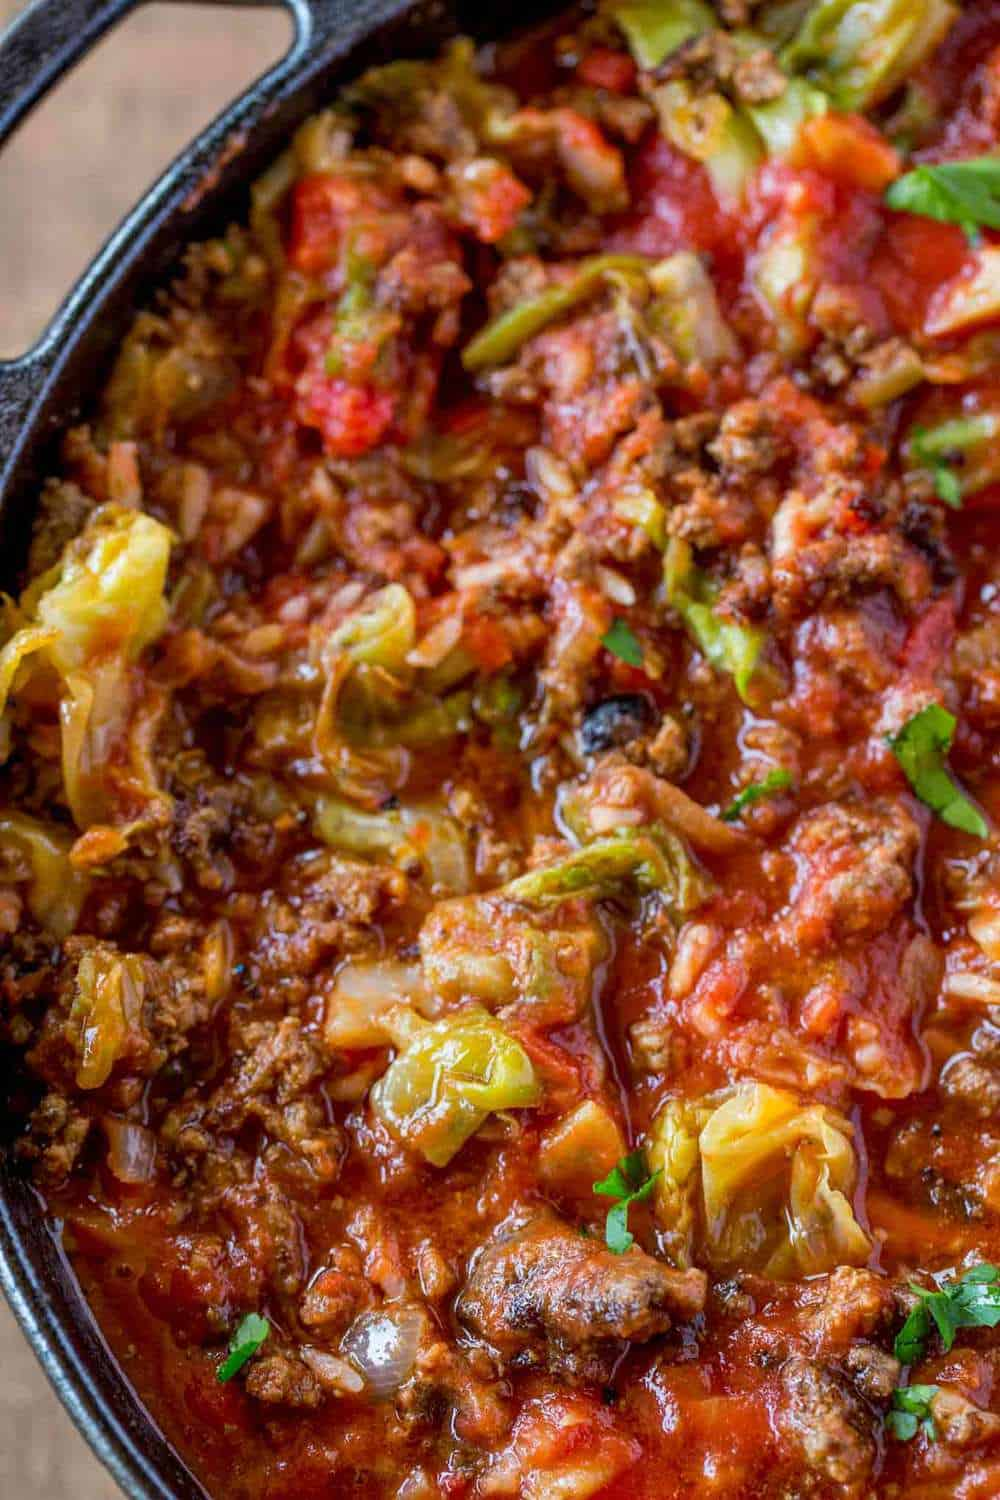 Stuffed Cabbage in soup form and so easy!